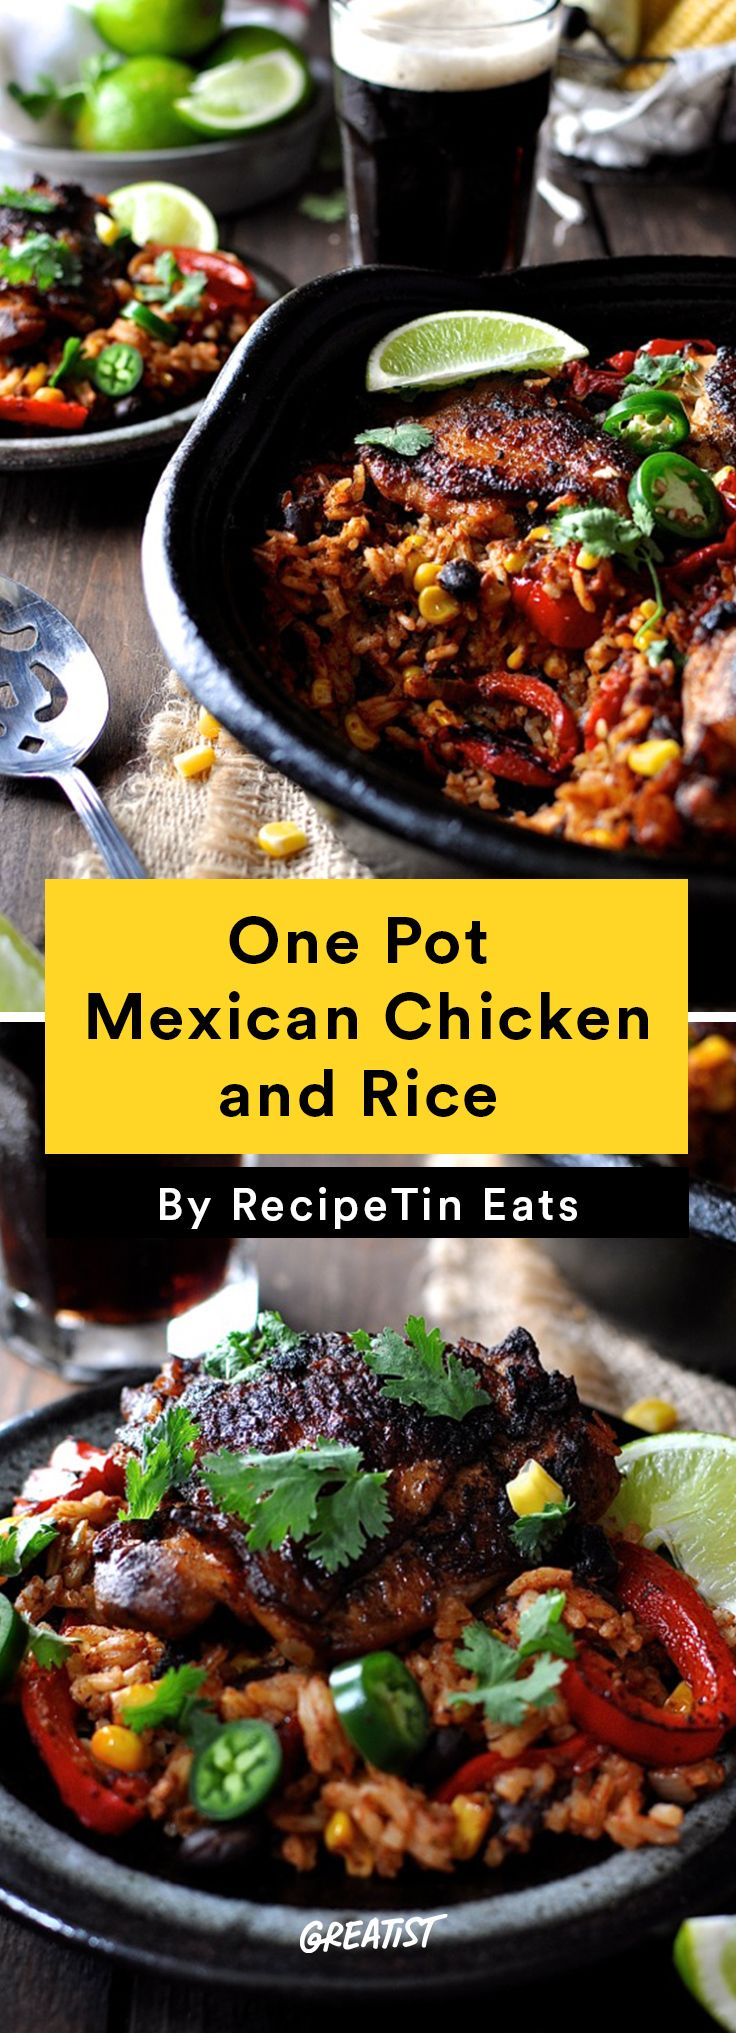 2. Mexican Chicken and Rice #healthy #chicken #recipes http://greatist.com/eat/easy-chicken-recipes-one-dish-dinner-ideas